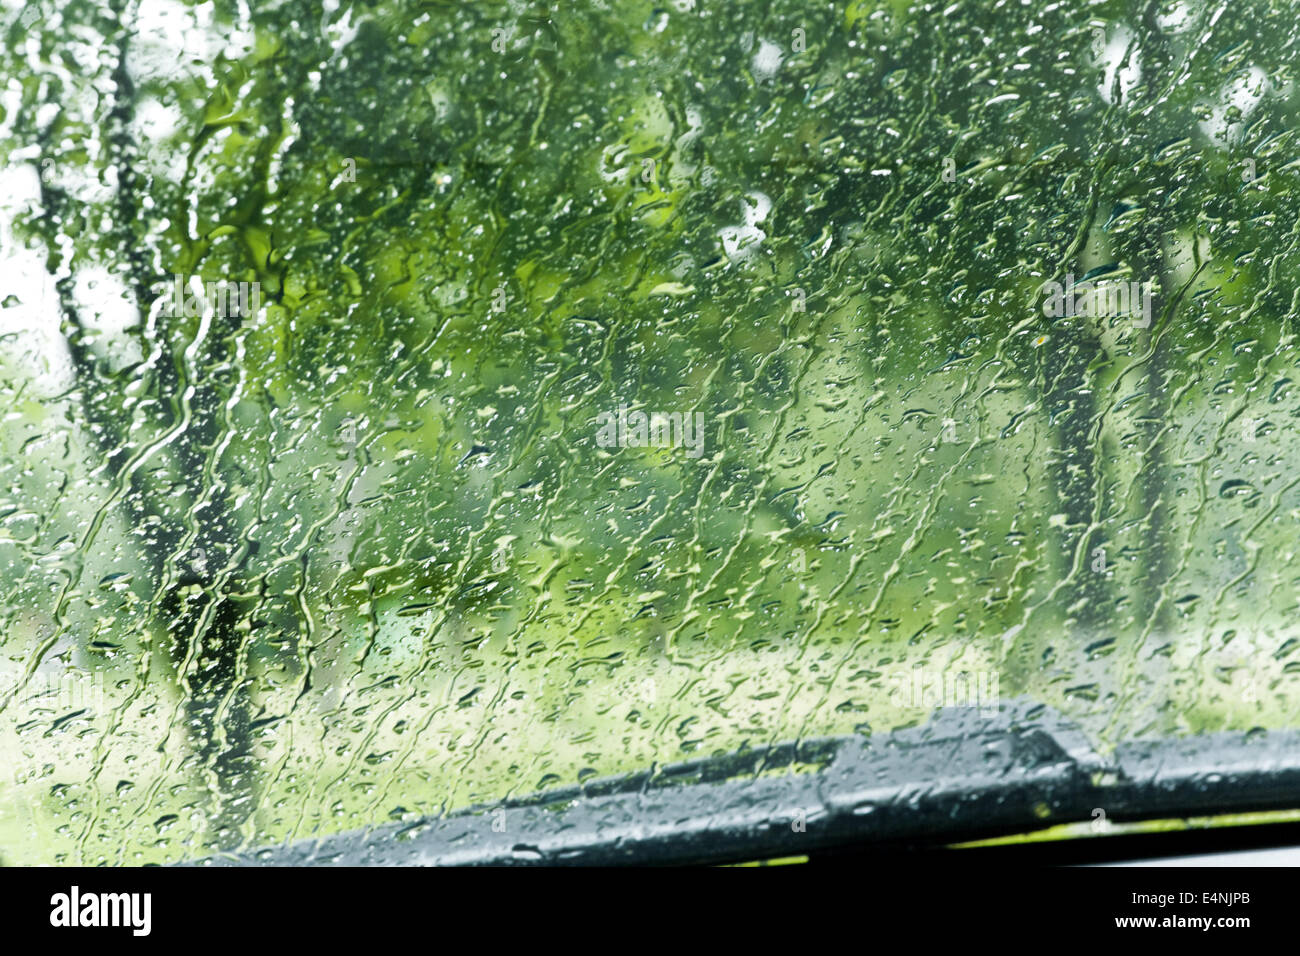 raindrops roll down a car windshield - Stock Image